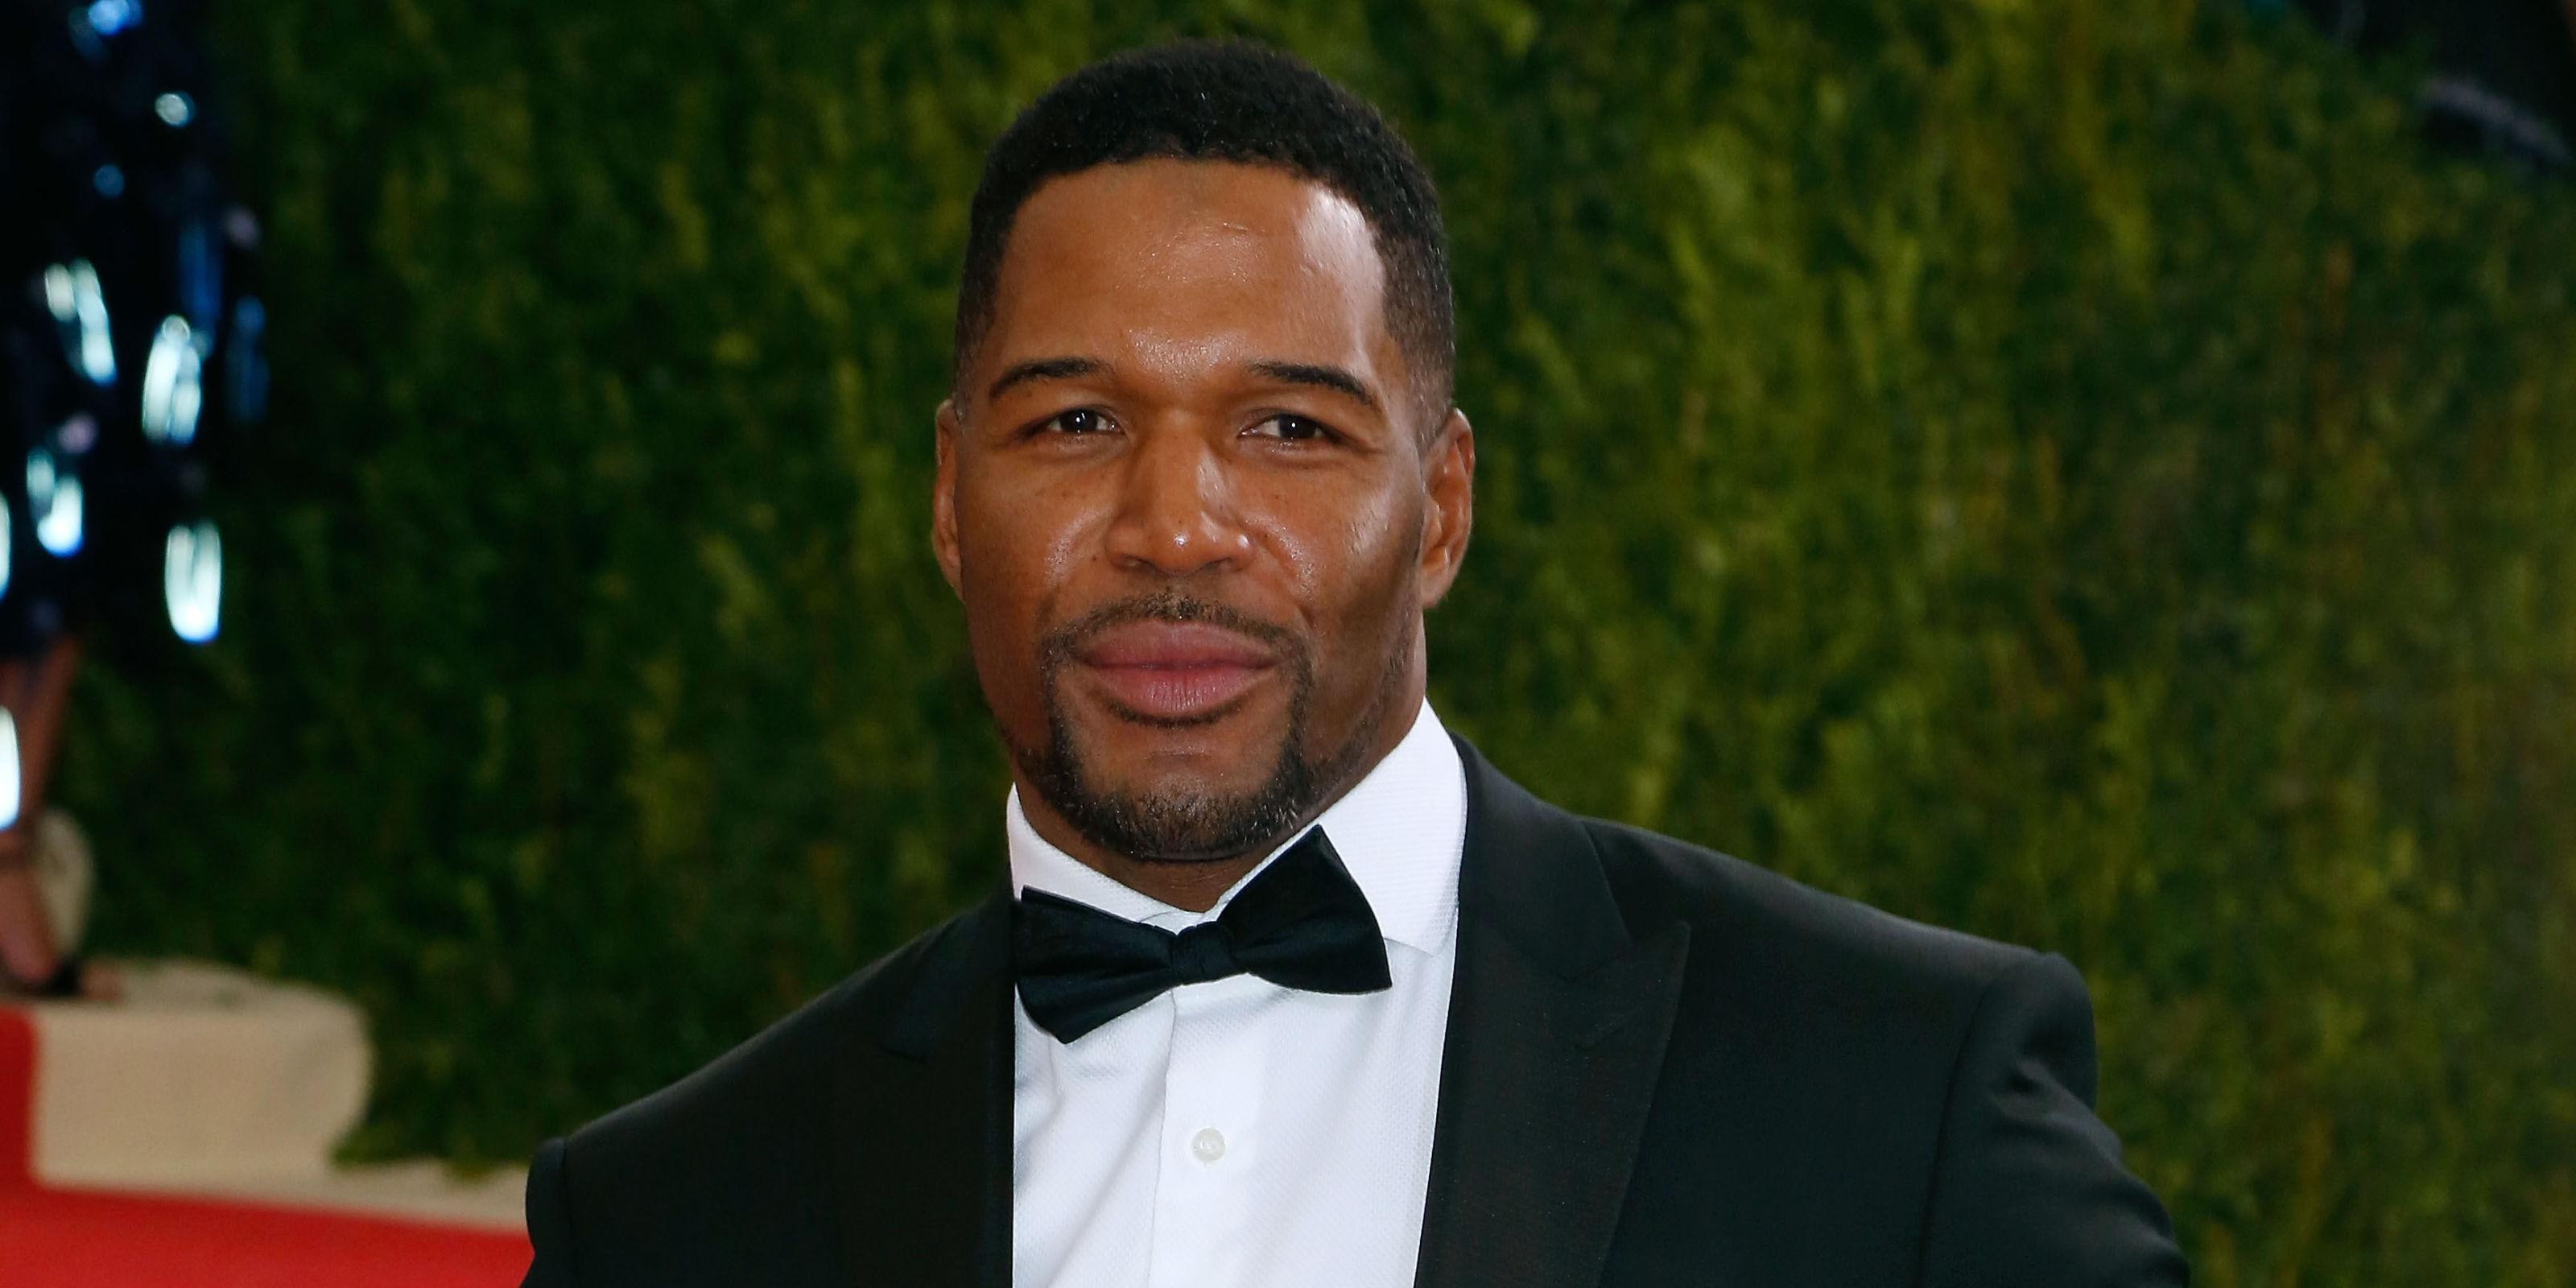 Michael Strahan Breaks His Silence About All That Kelly Ripa Drama